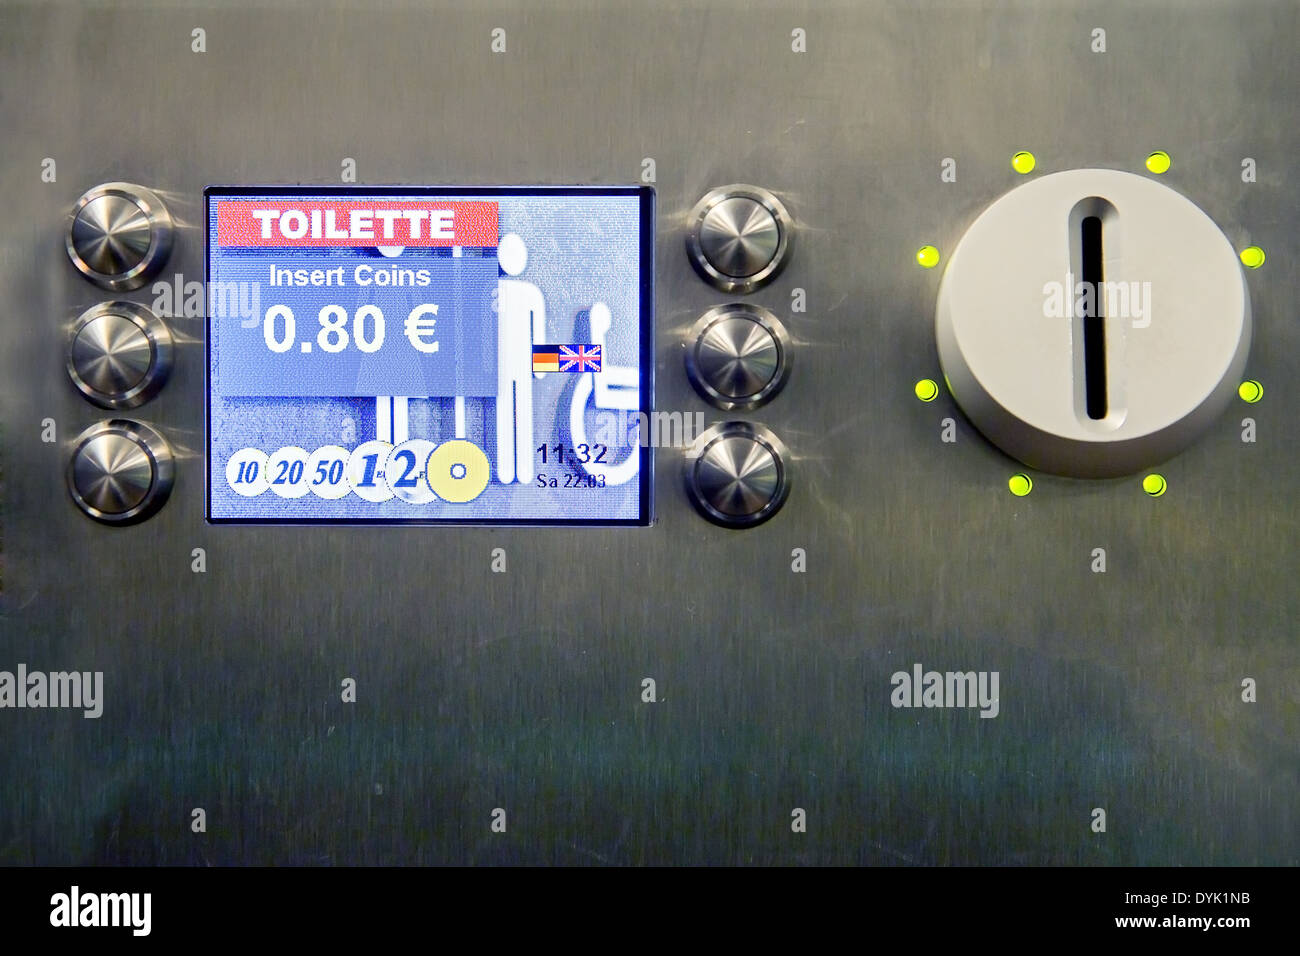 fee on the toilet - self-service automate - Stock Image